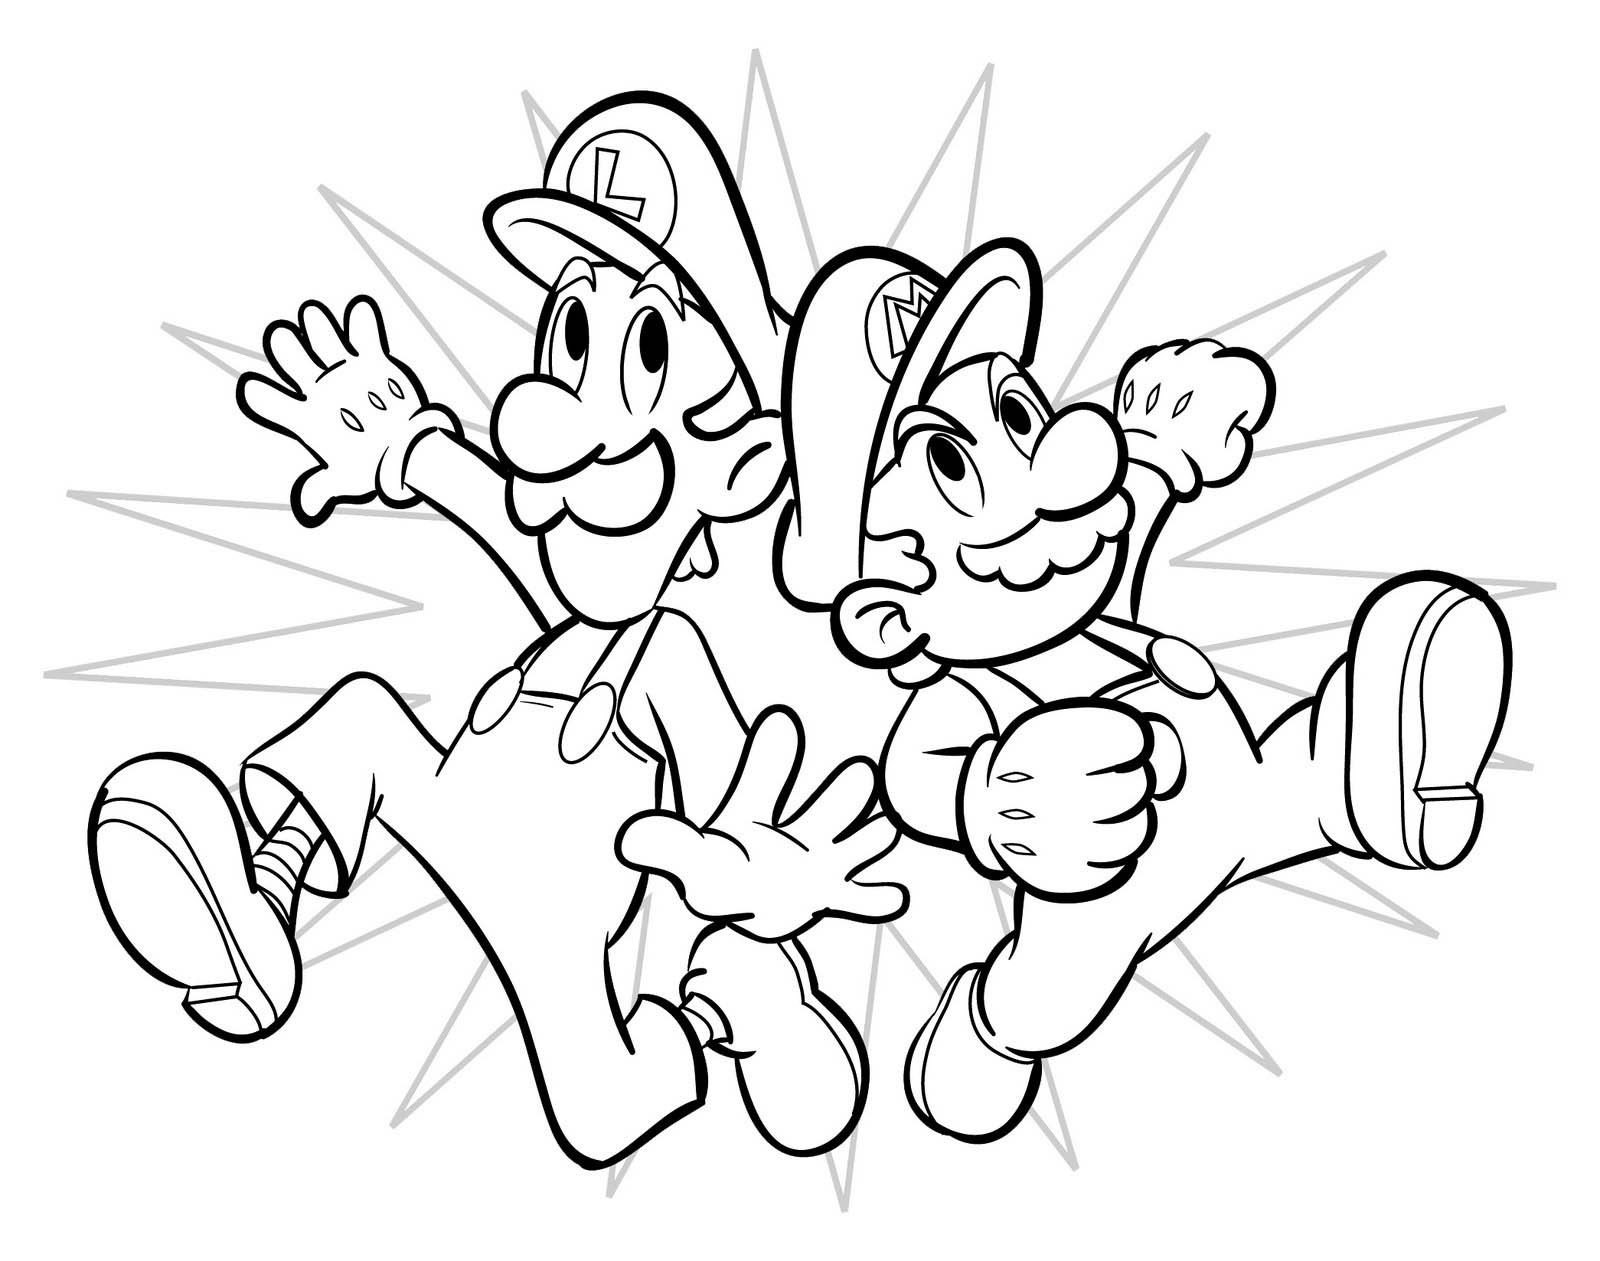 Free printable mario coloring pages for kids for Boys color pages